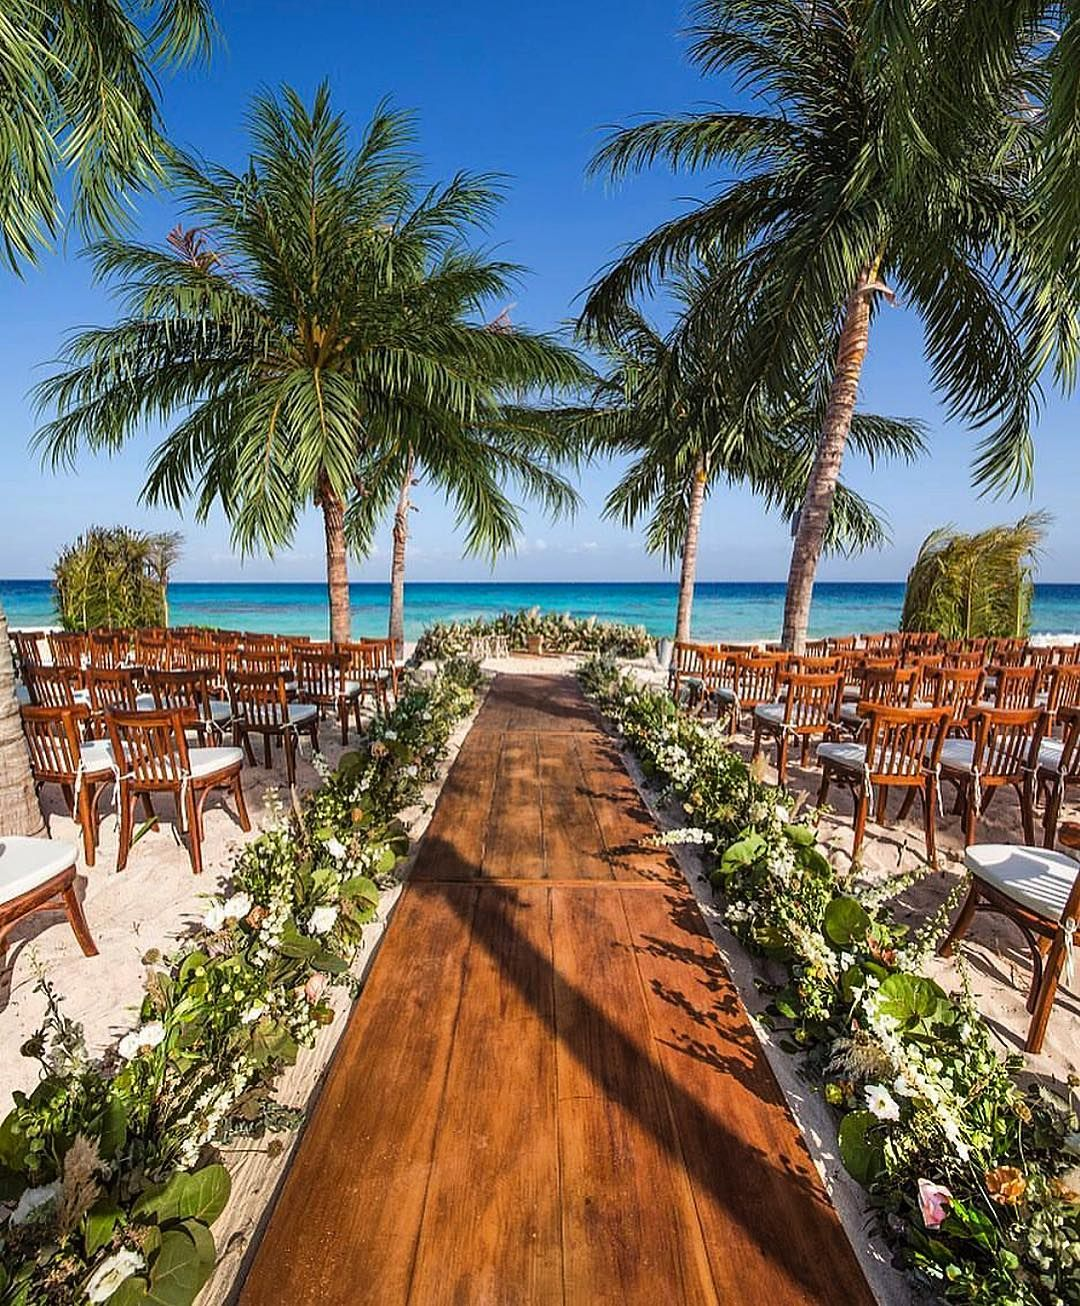 Image May Contain People Sitting Sky Ocean Tree Plant Table